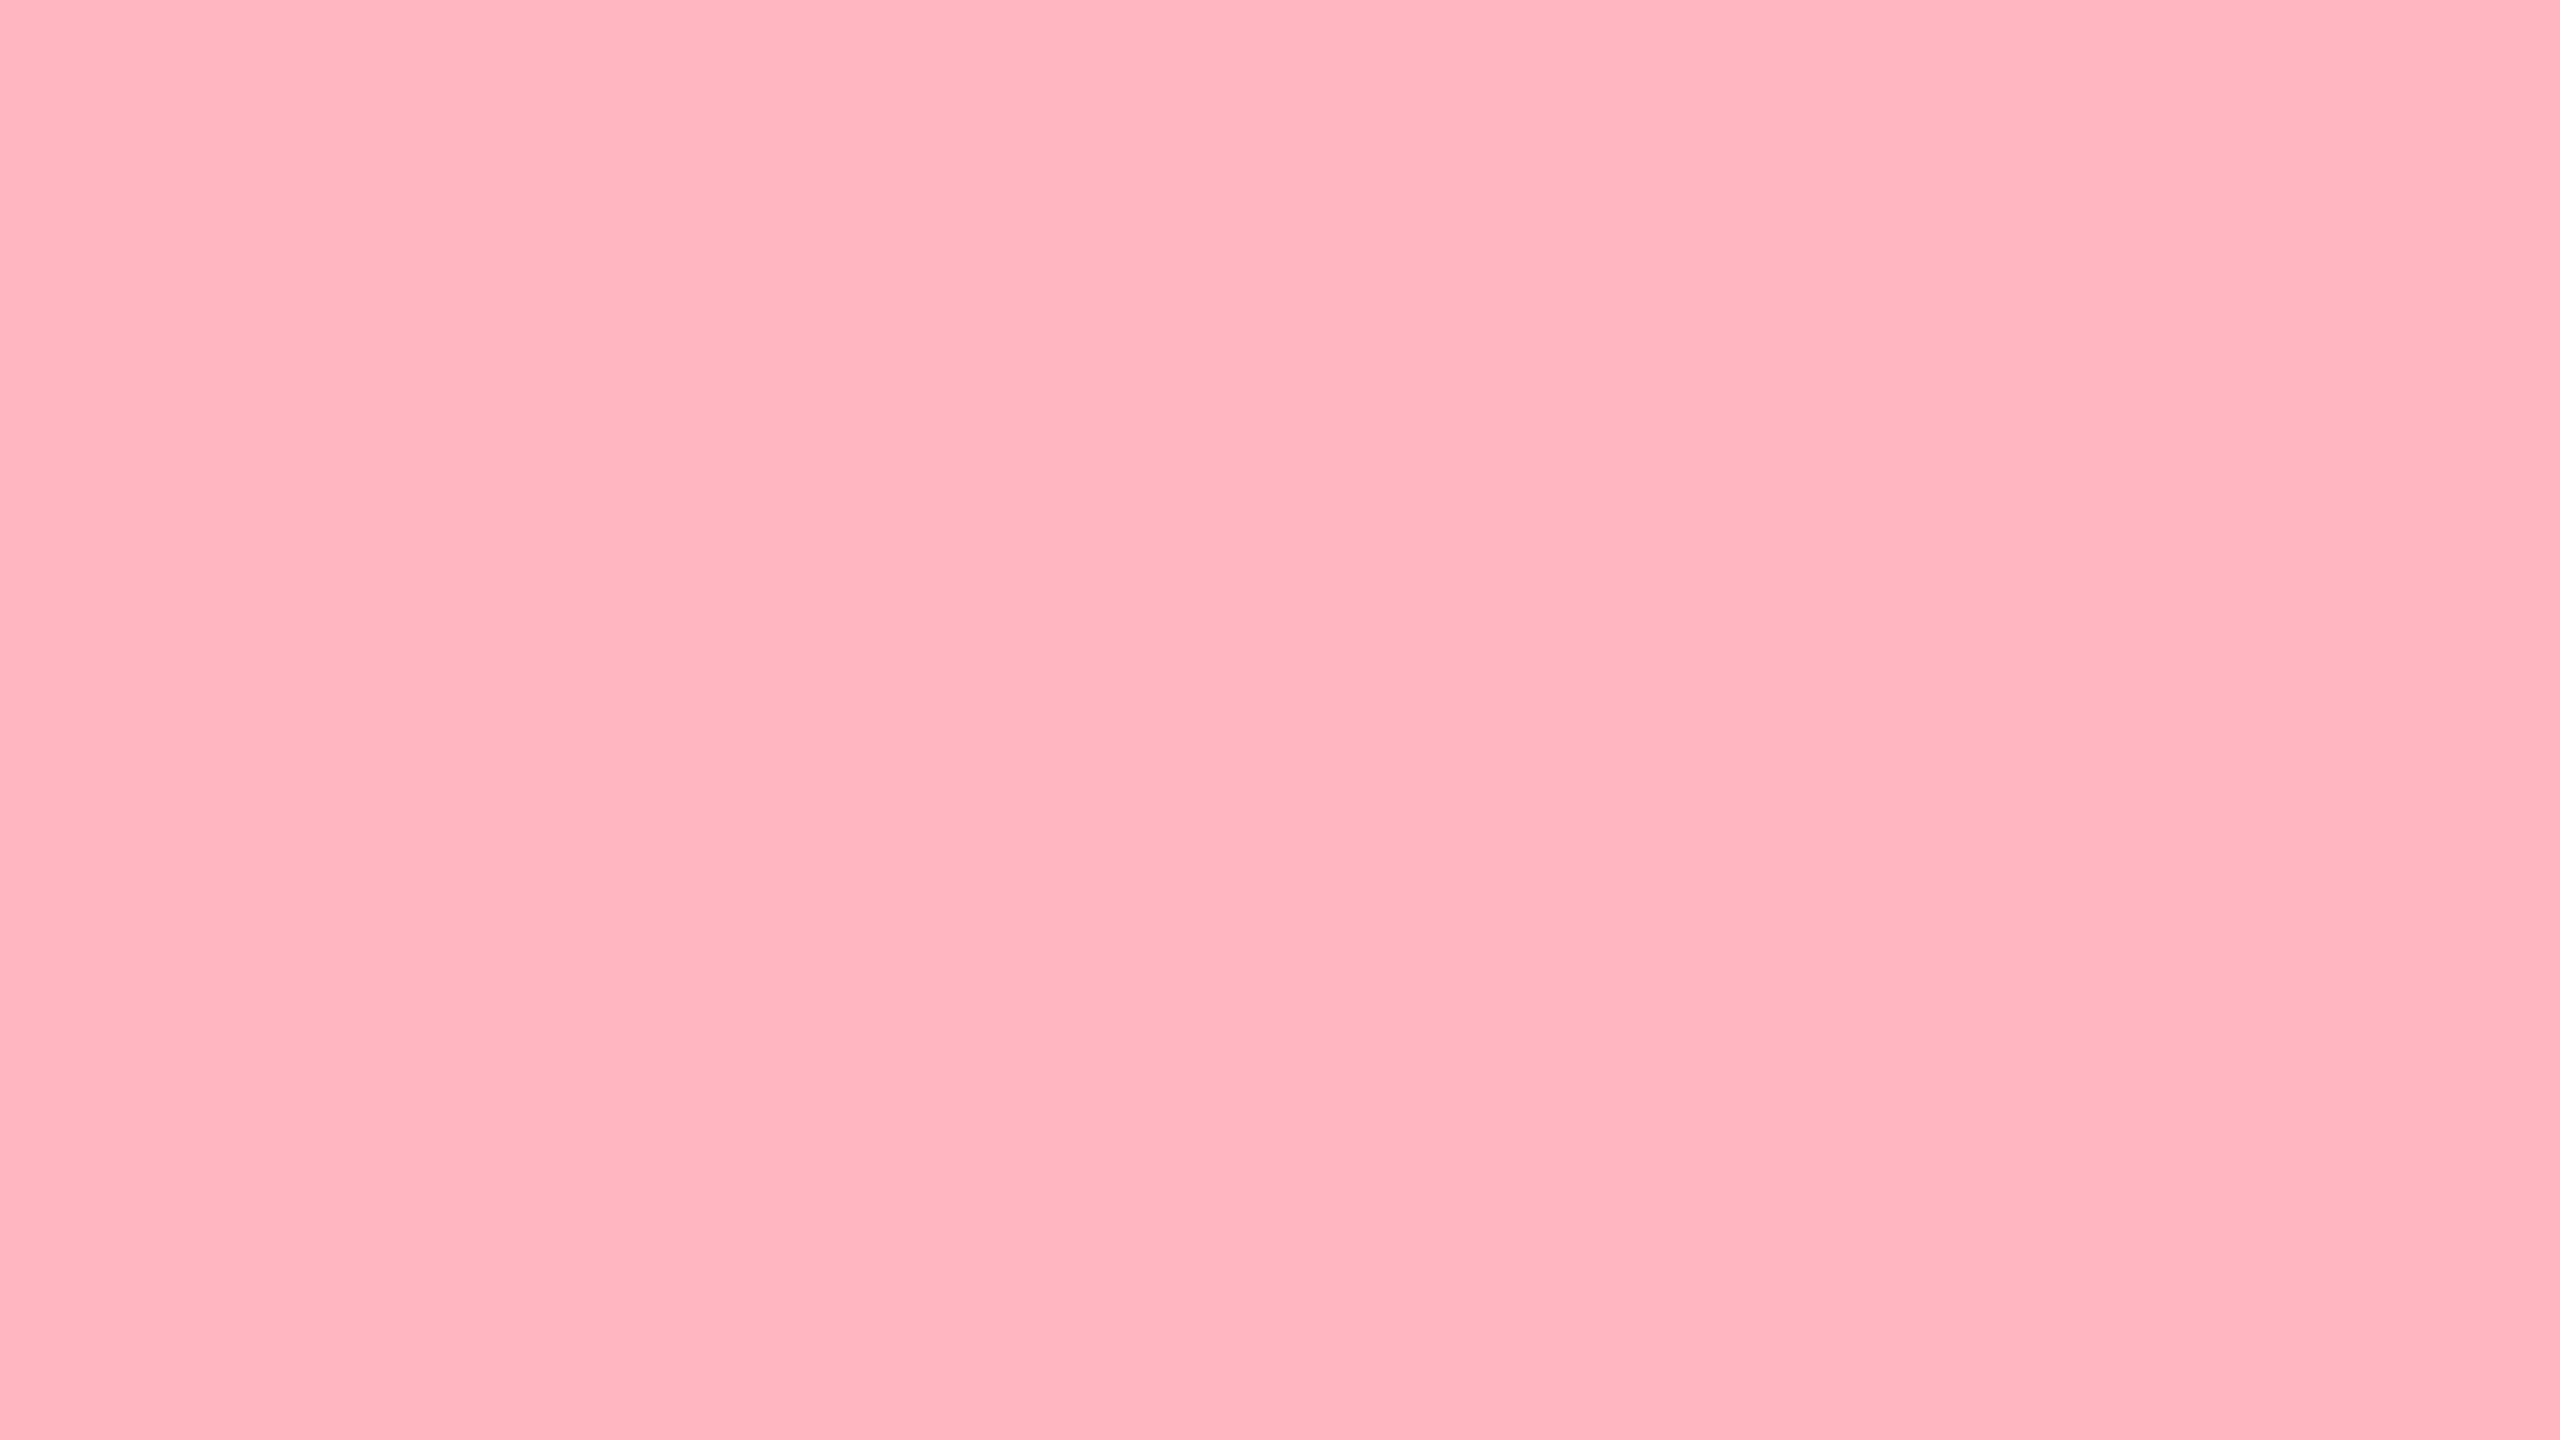 2560x1440 light pink solid color wallpaper hd wallpapers